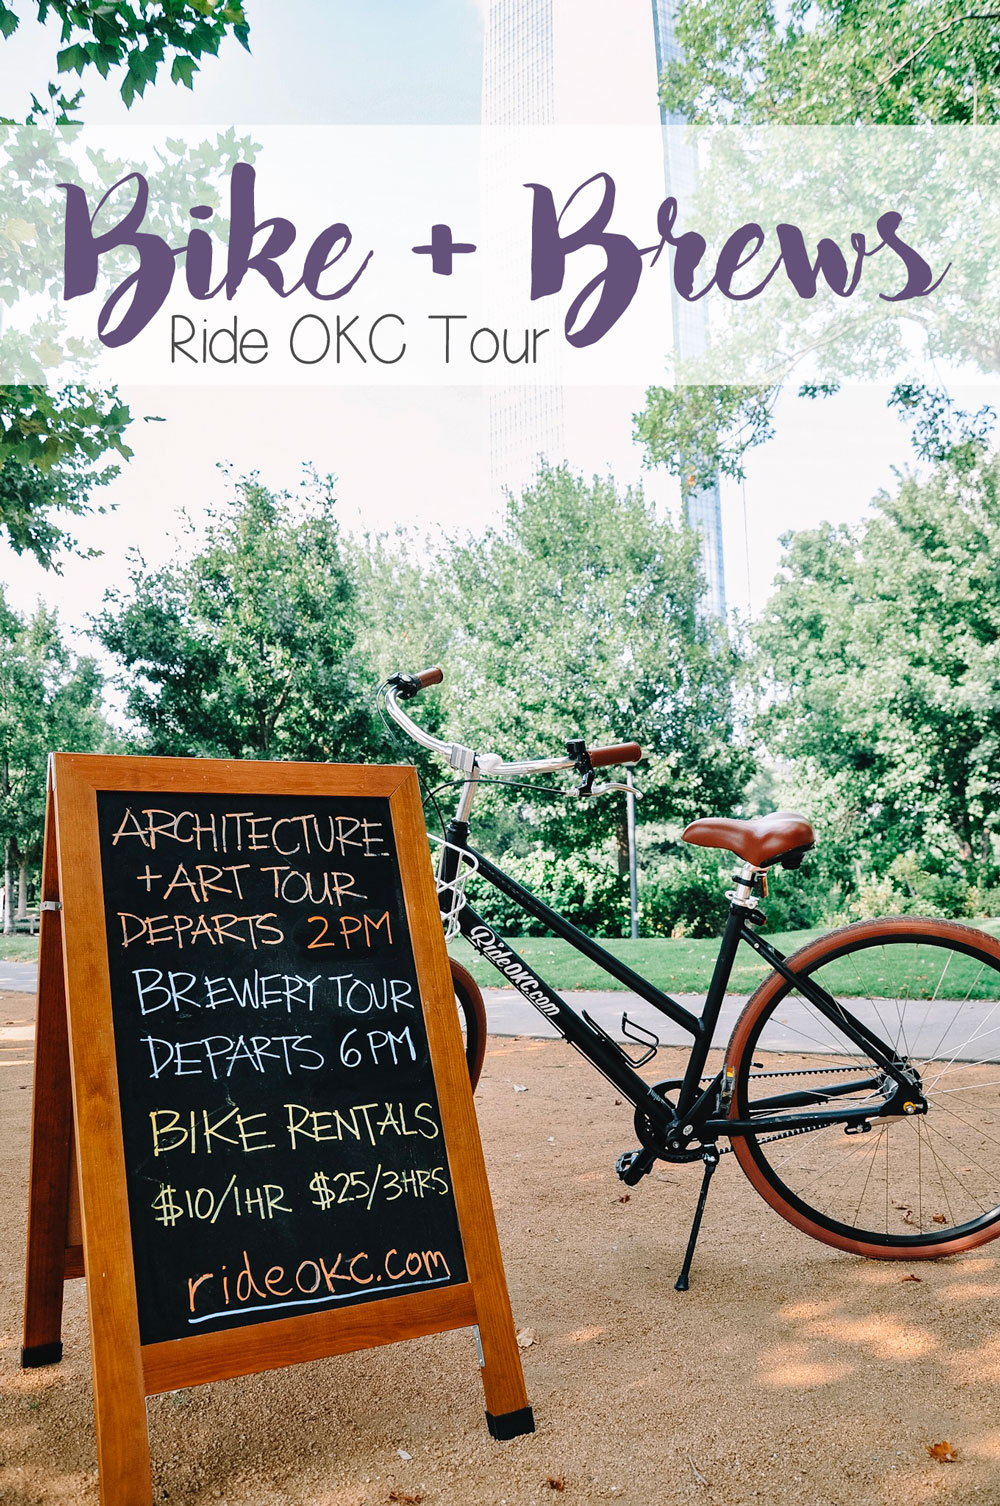 ride okc bike and brews tour